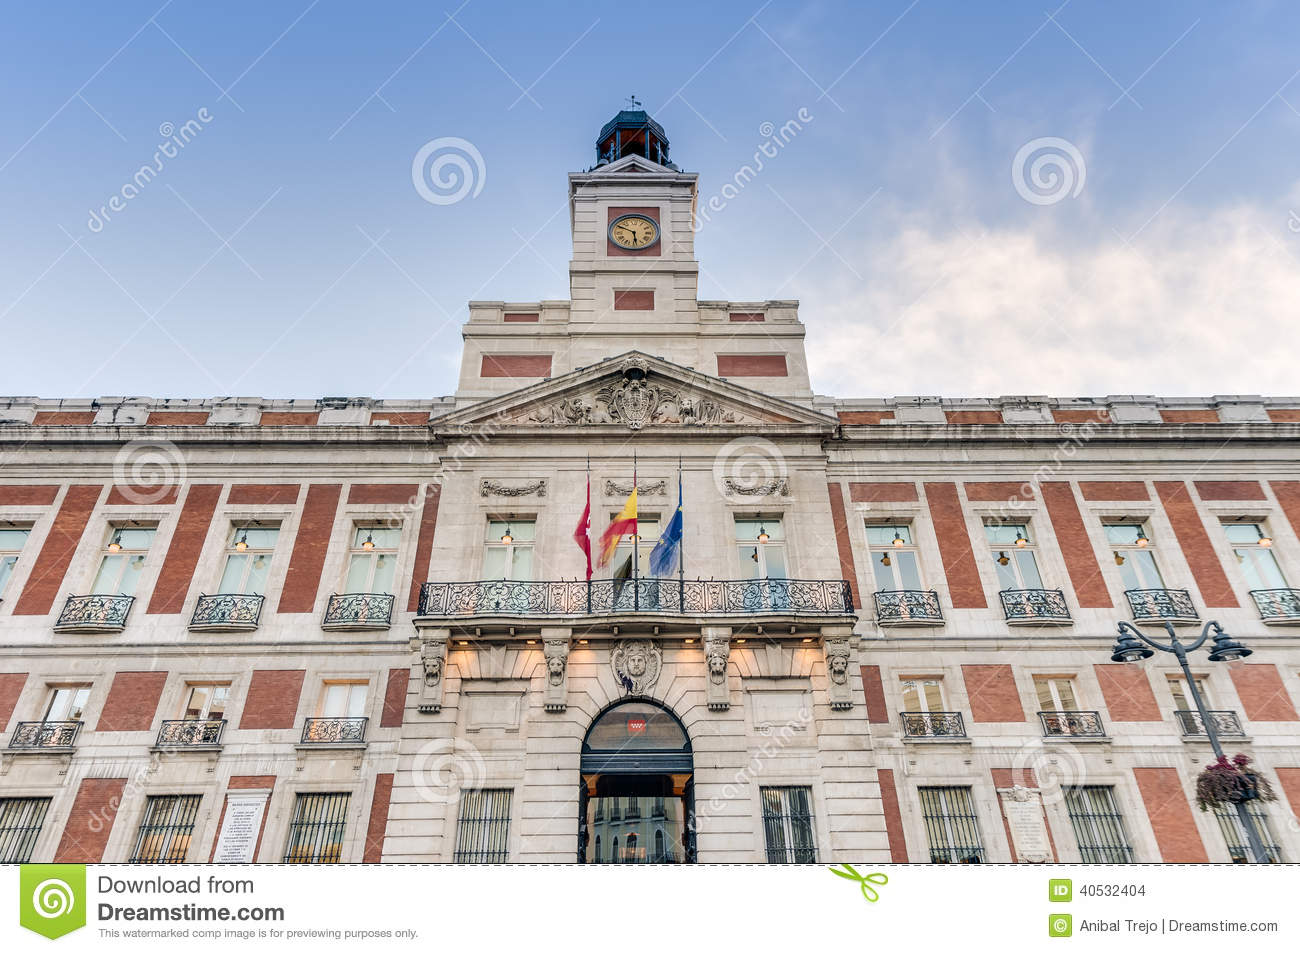 Real casa de correos building in madrid spain stock for Casa de correos